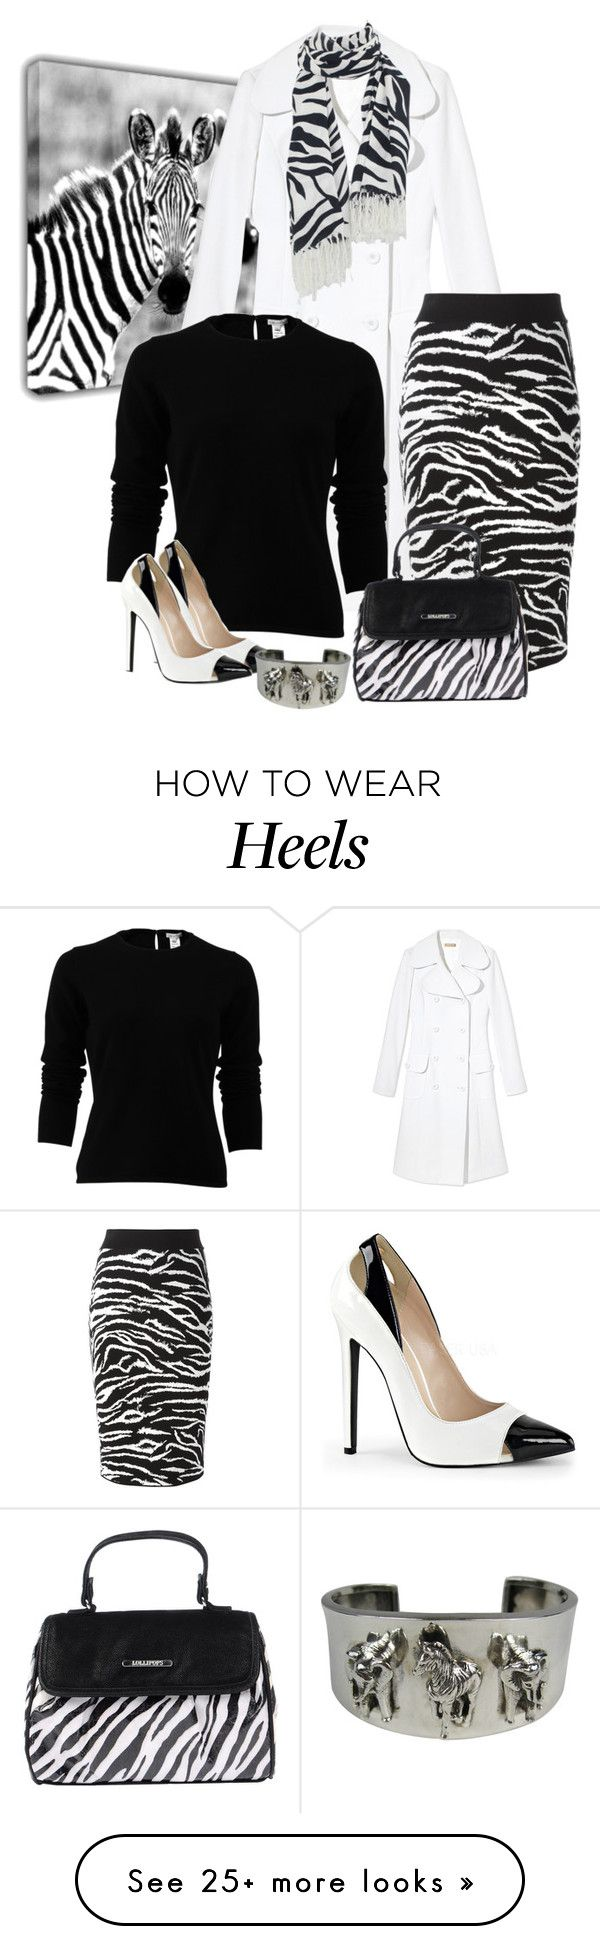 """Zebra Print"" by lorrainekeenan on Polyvore featuring Michael Kors, Oscar de la Renta, FAUSTO PUGLISI and Lollipops"